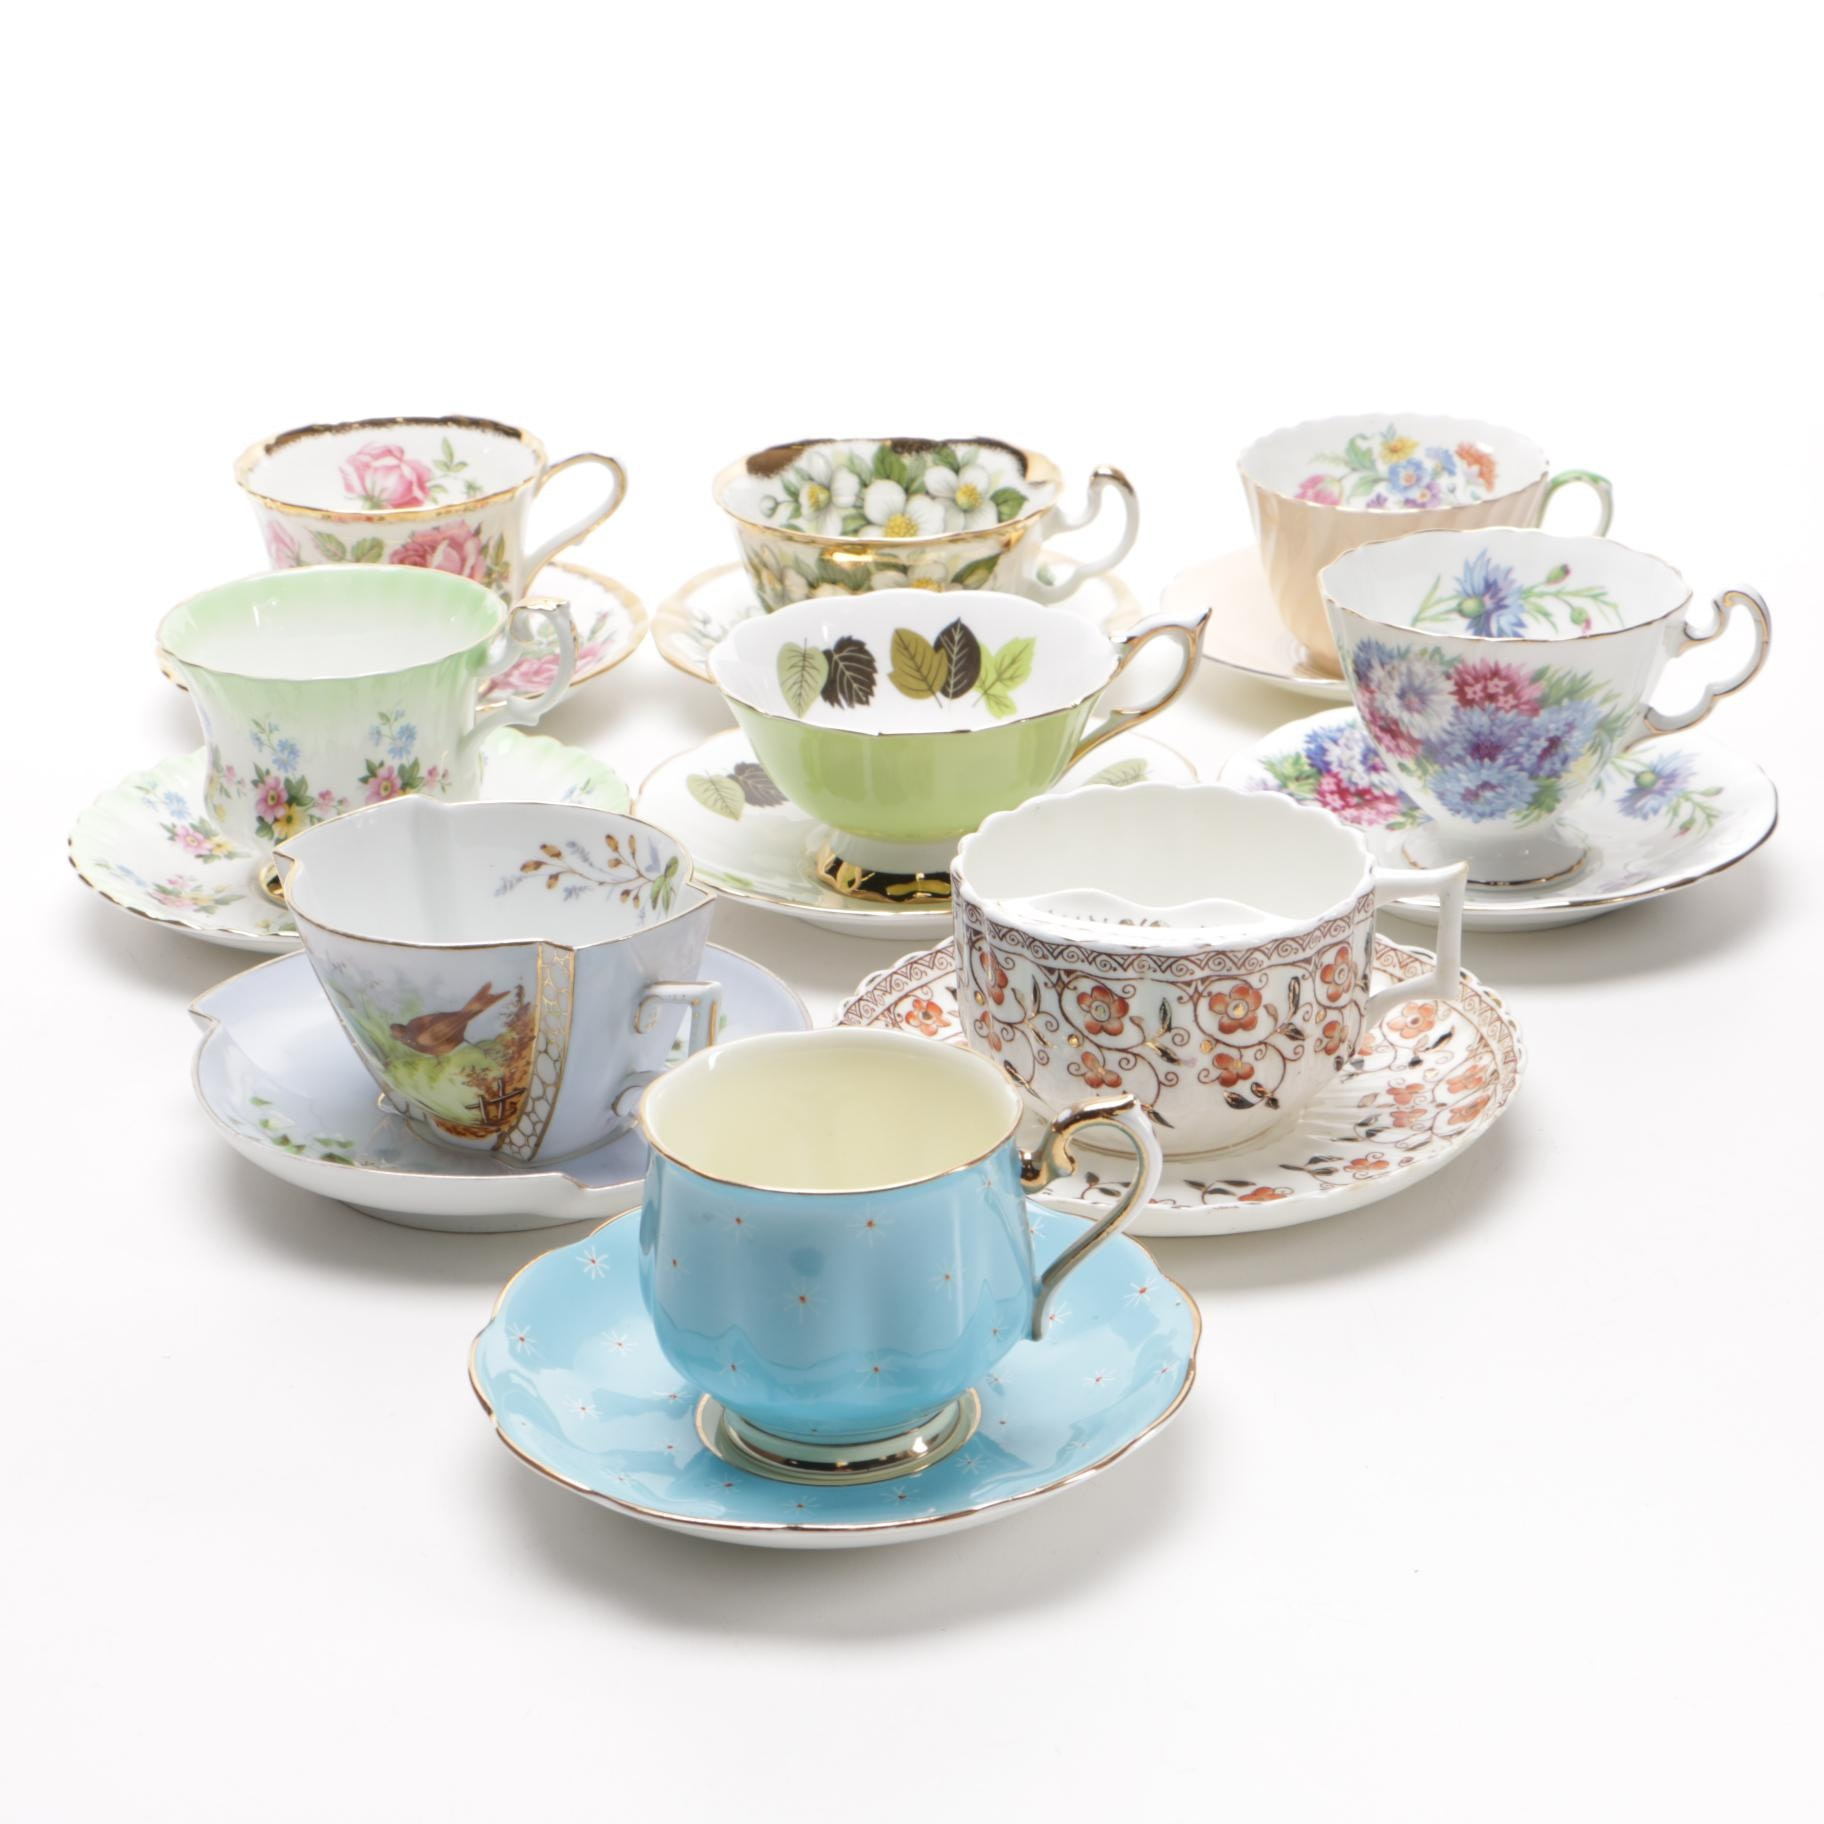 Adderley and Other English Bone China Tea Cups And Saucers